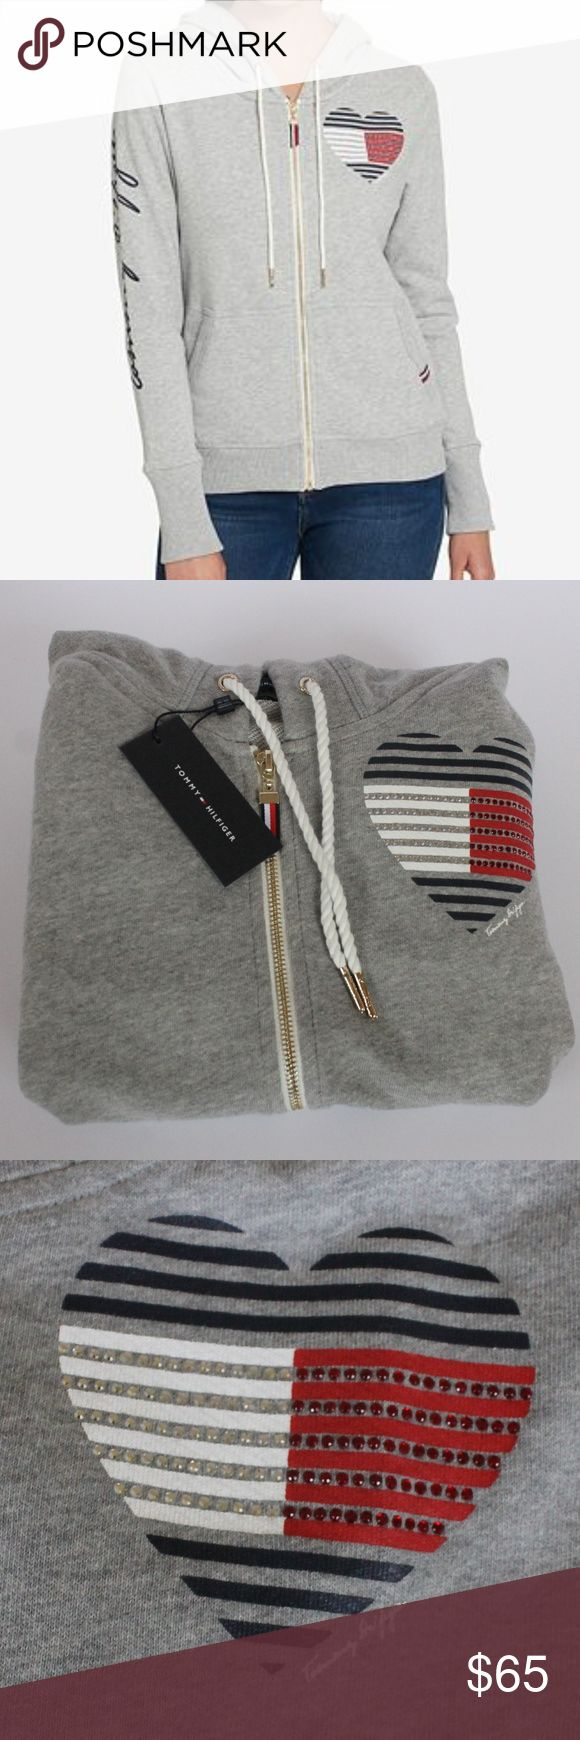 Tommy Hilfiger Embellished  Hoodie SOLD OUT style Dare I say this one is my favorite, so soft and cozy. Tommy Hilfiger embellished lined gray hoodie. Studded heart graphic at front; logo print at sleeve; kangaroo pocket; fleece lining. SOLD OUT style. Tommy Hilfiger Tops Sweatshirts & Hoodies